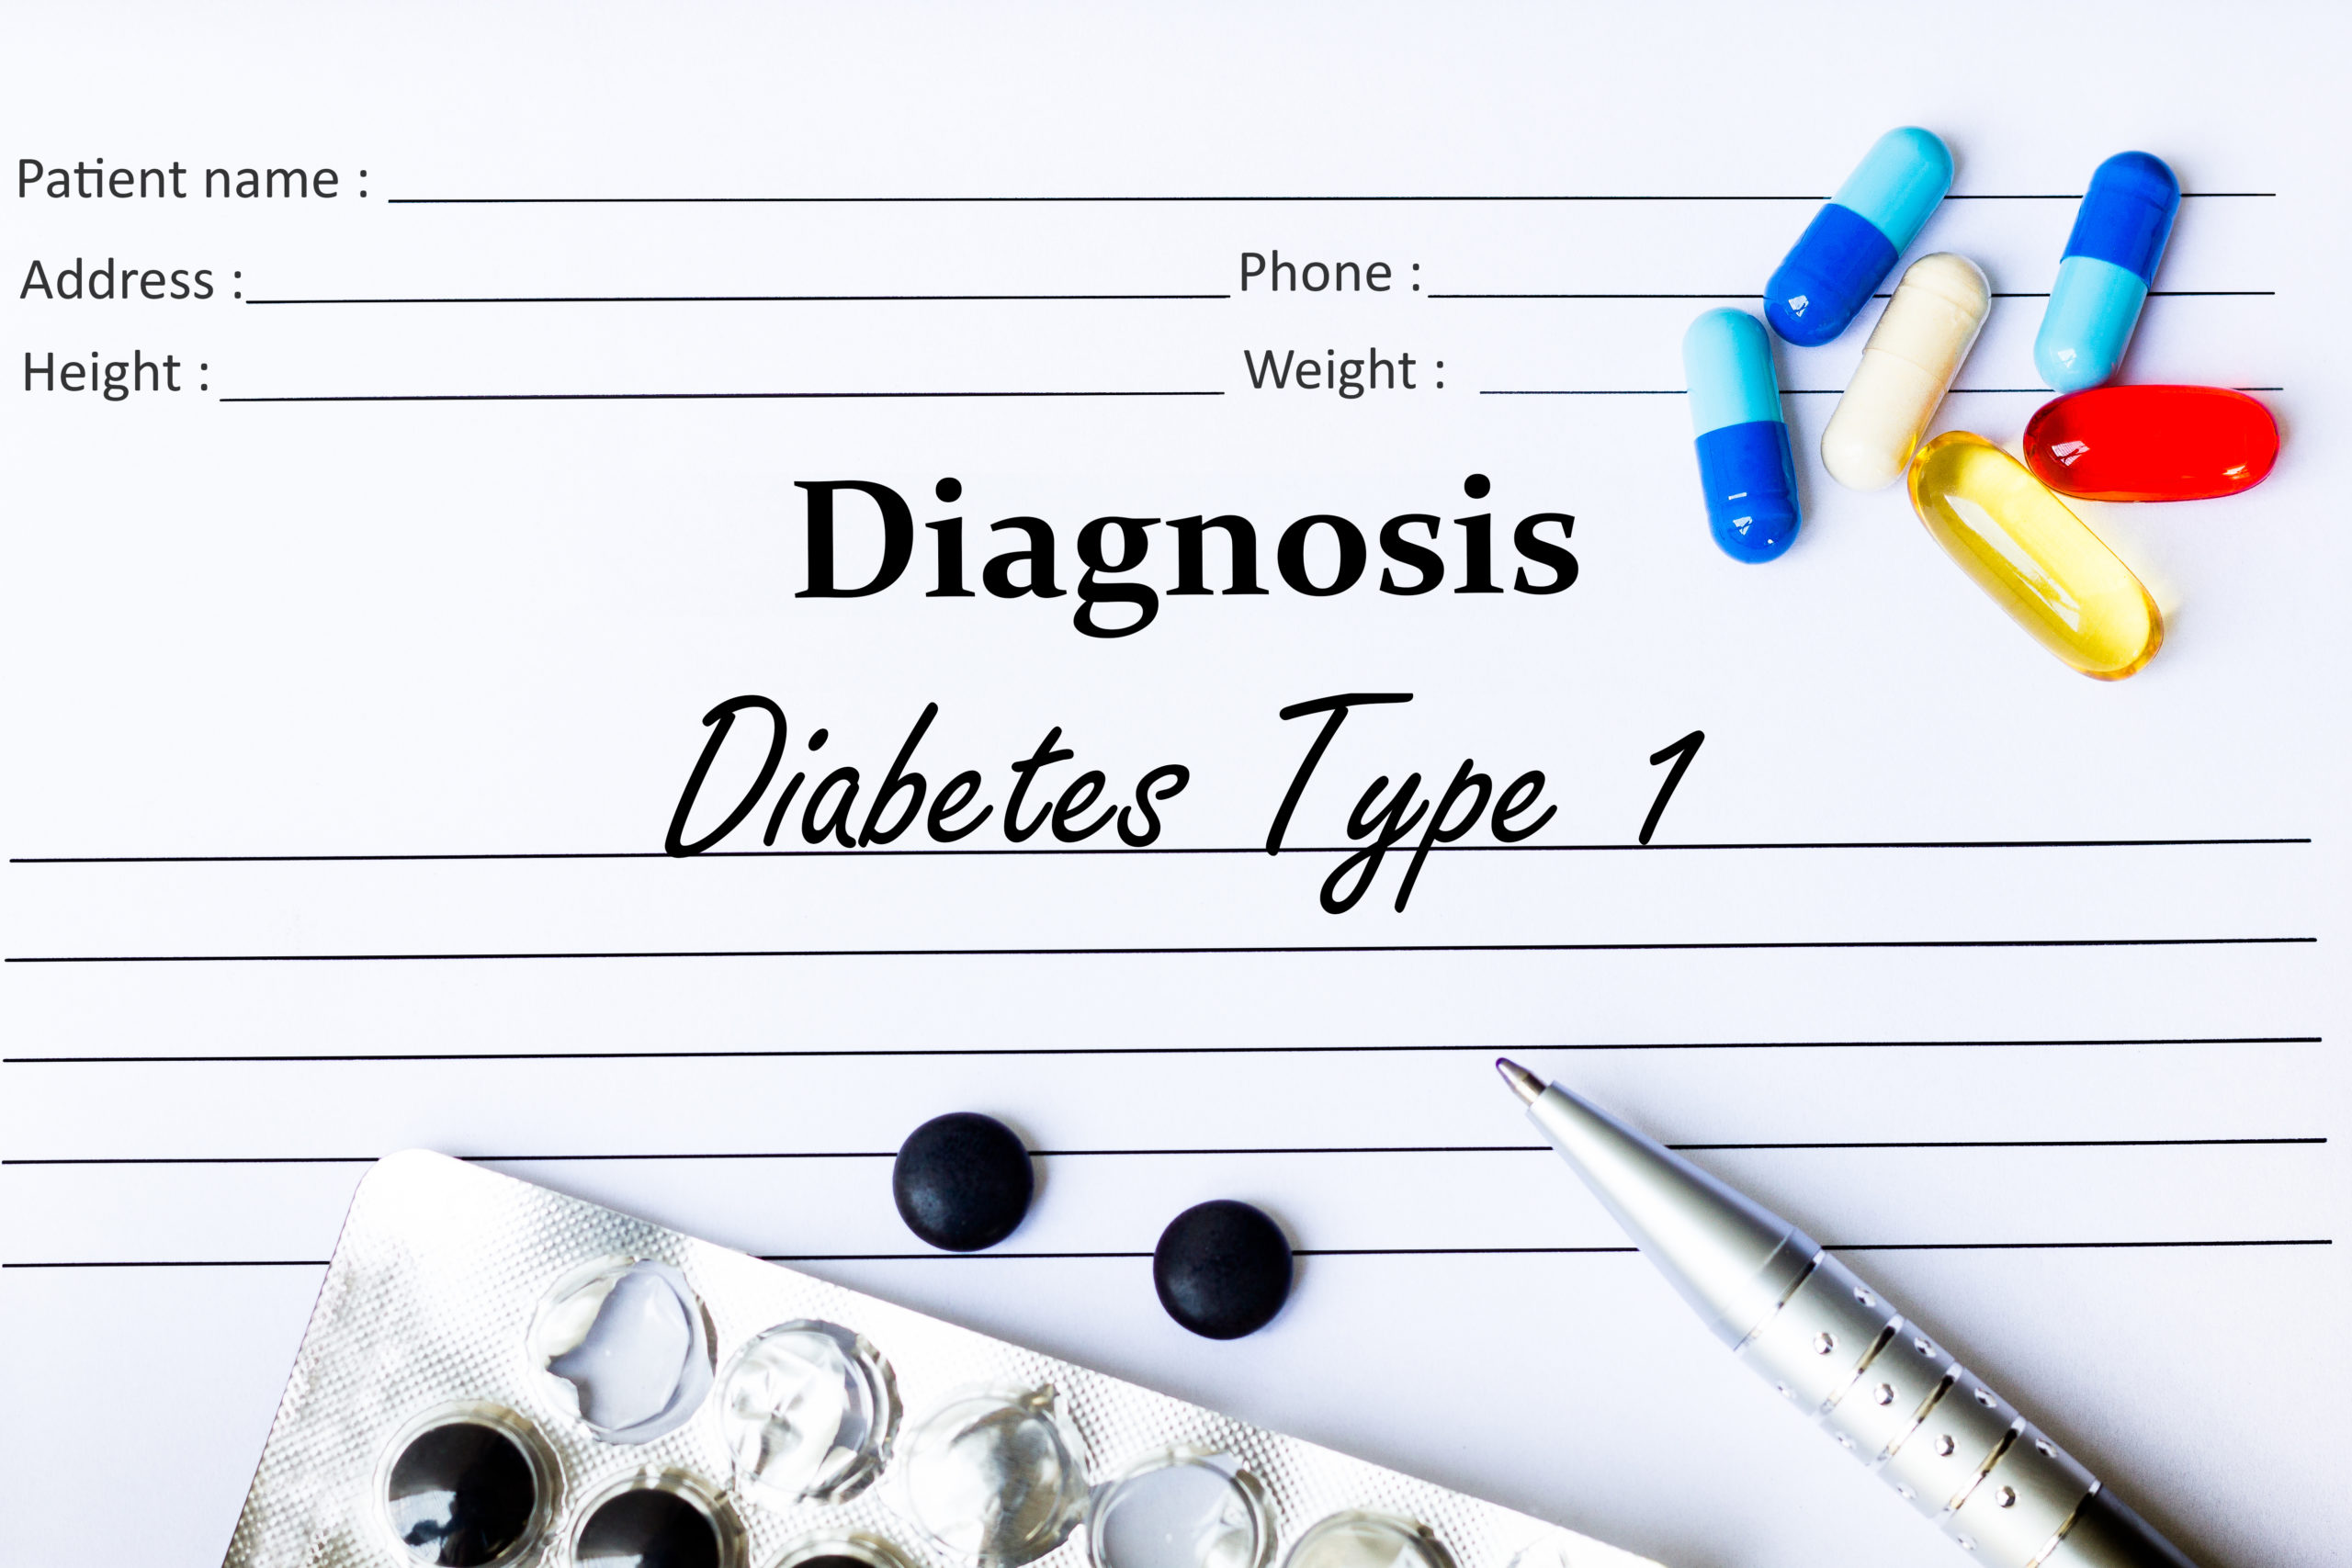 Diabetes Type 1 Diagnosis written down on paper surrounded by pills